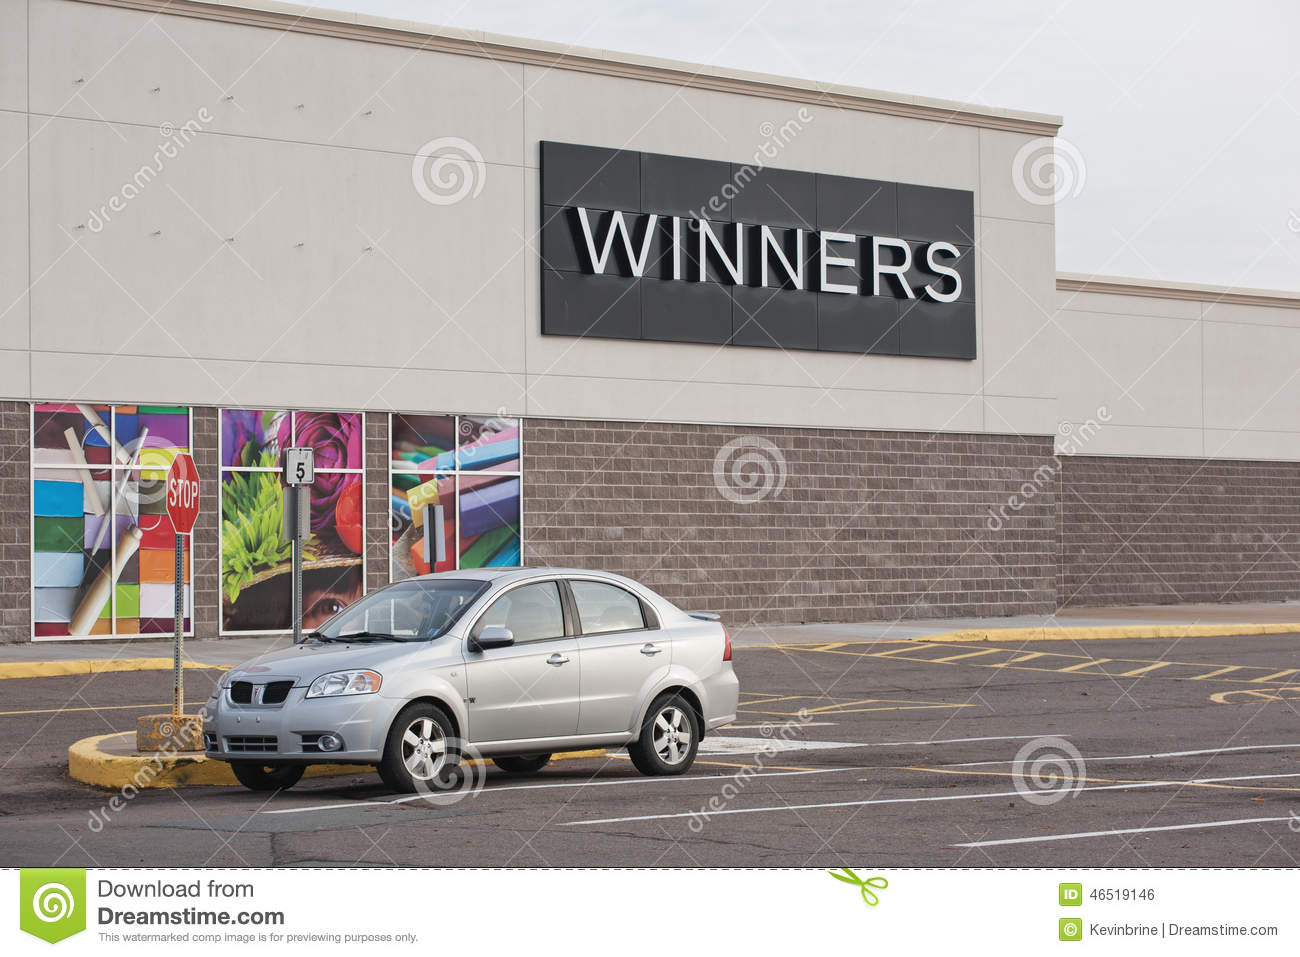 Winners clothing store